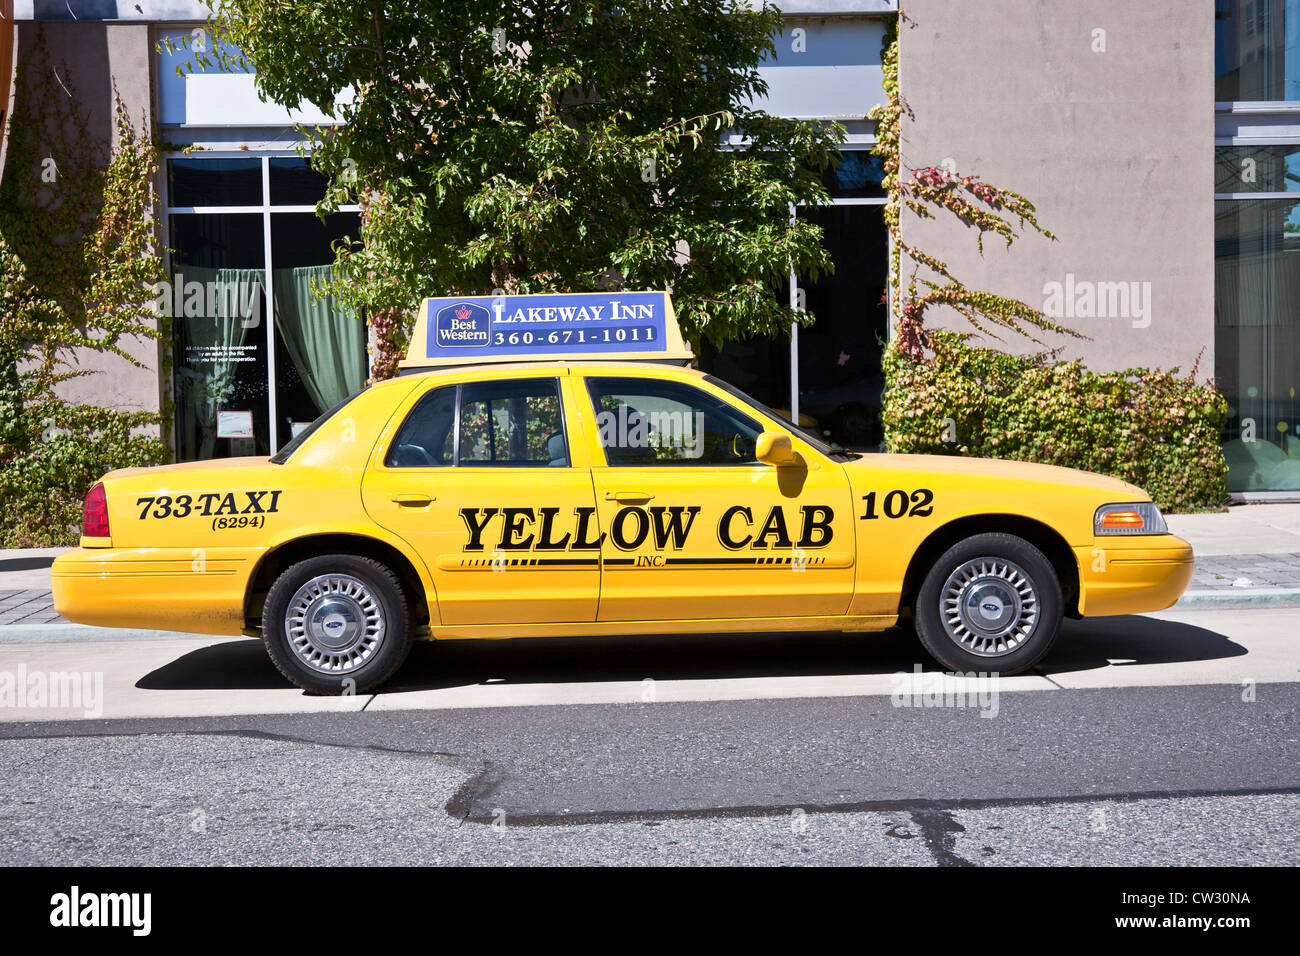 yellow cab taxi parked on street with ad for national brand